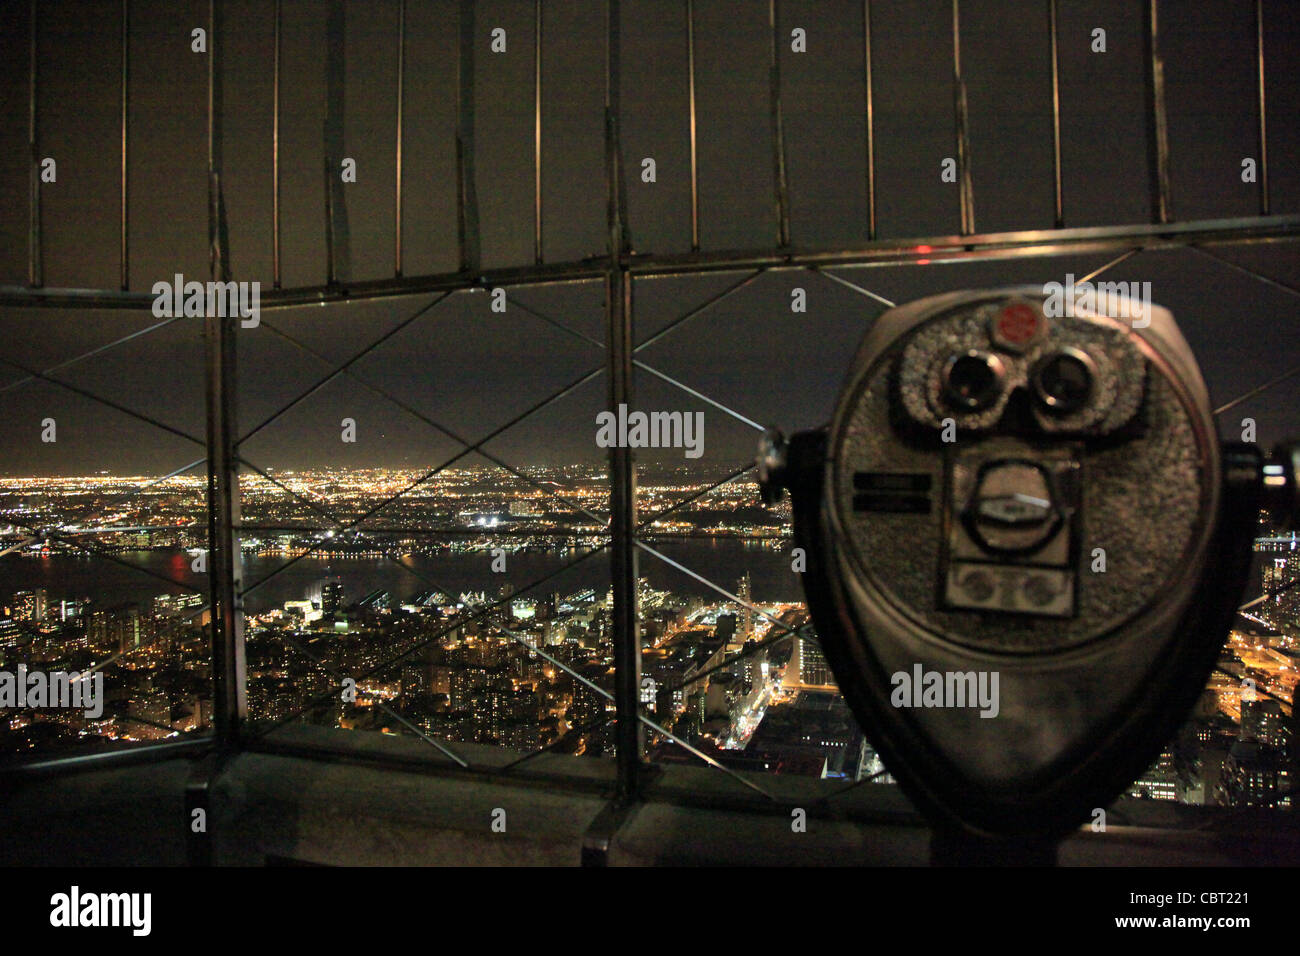 USA, Manhattan,Nacht,night,foregorund focus,spyglass,Fernglas,Reling,railing,NYC,night sky,Nachthimmel - Stock Image